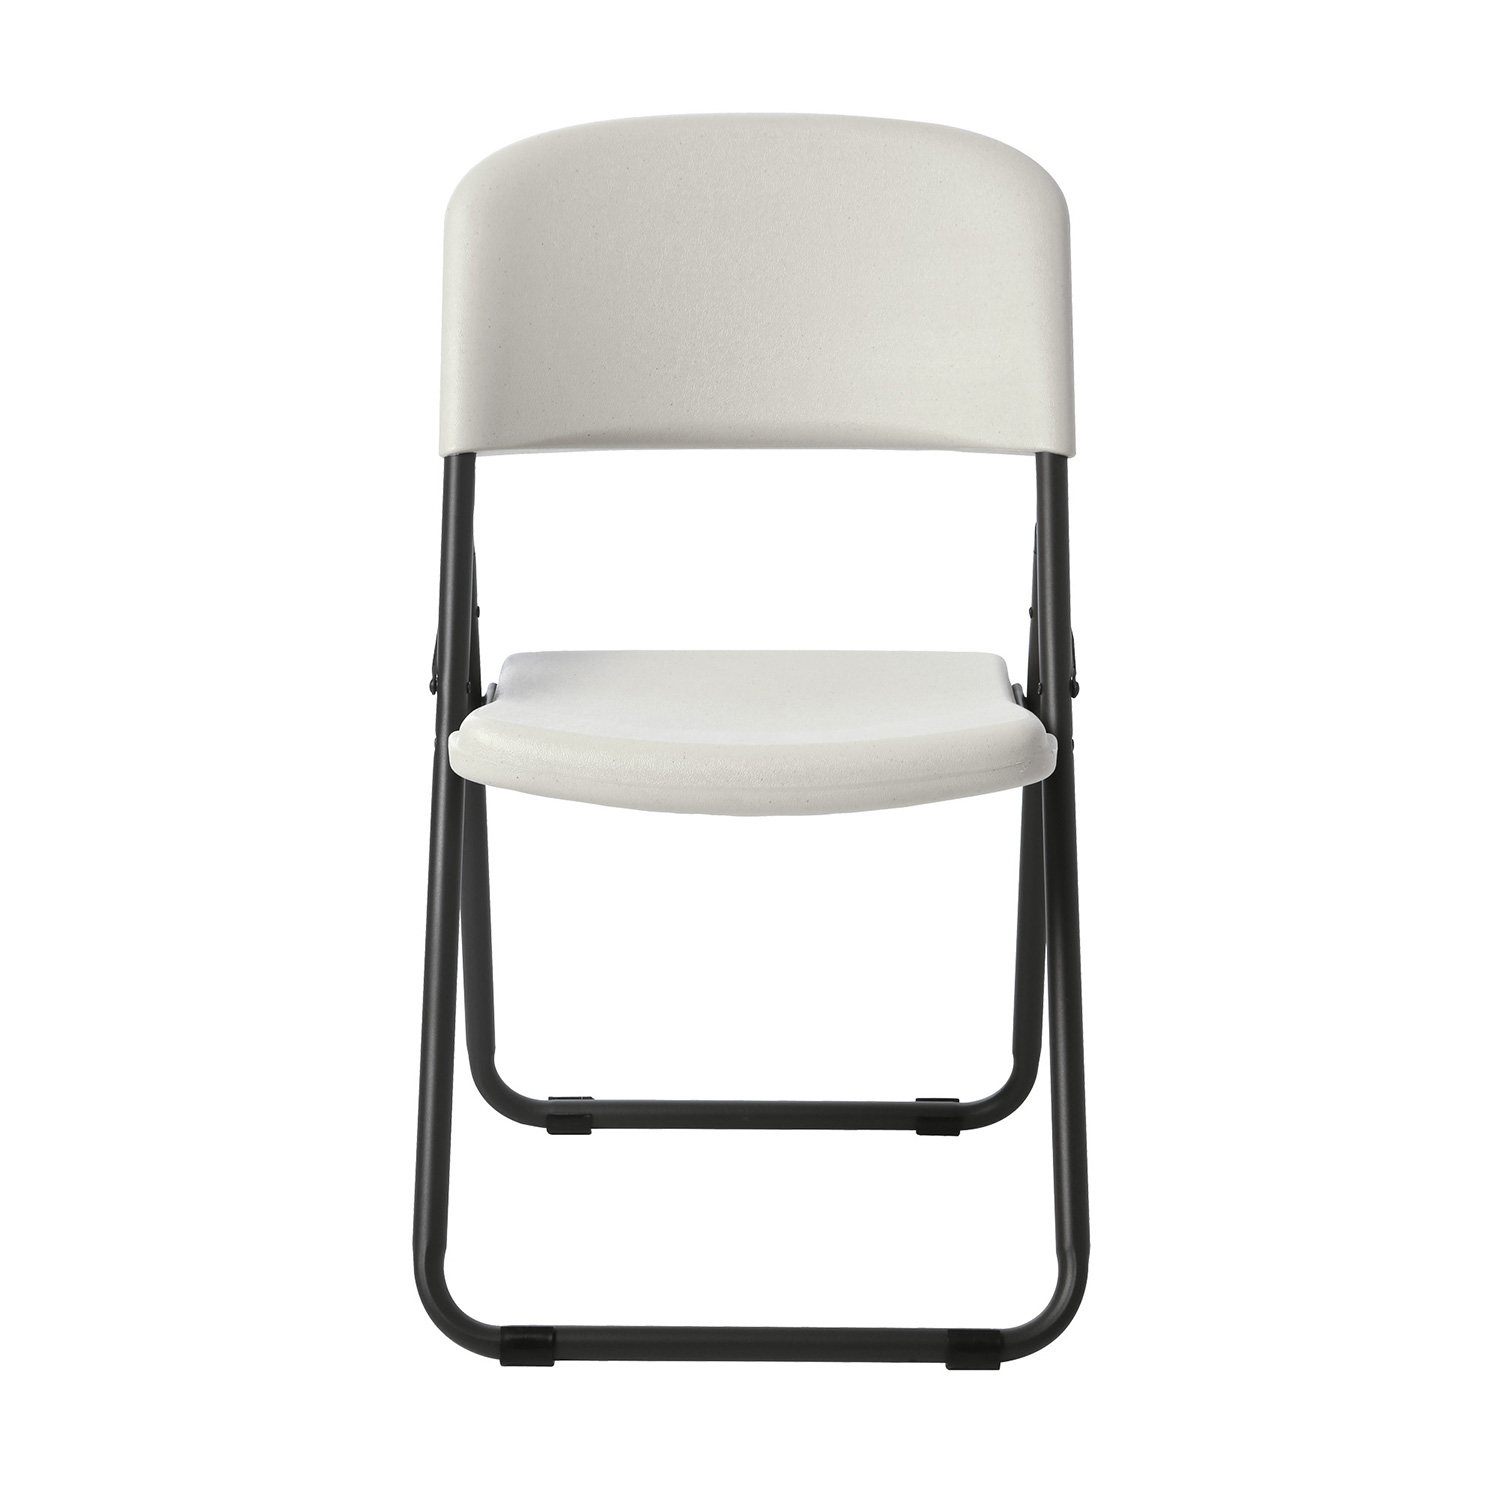 Lifetime mercial Grade Loop Leg Contoured Folding Chair White